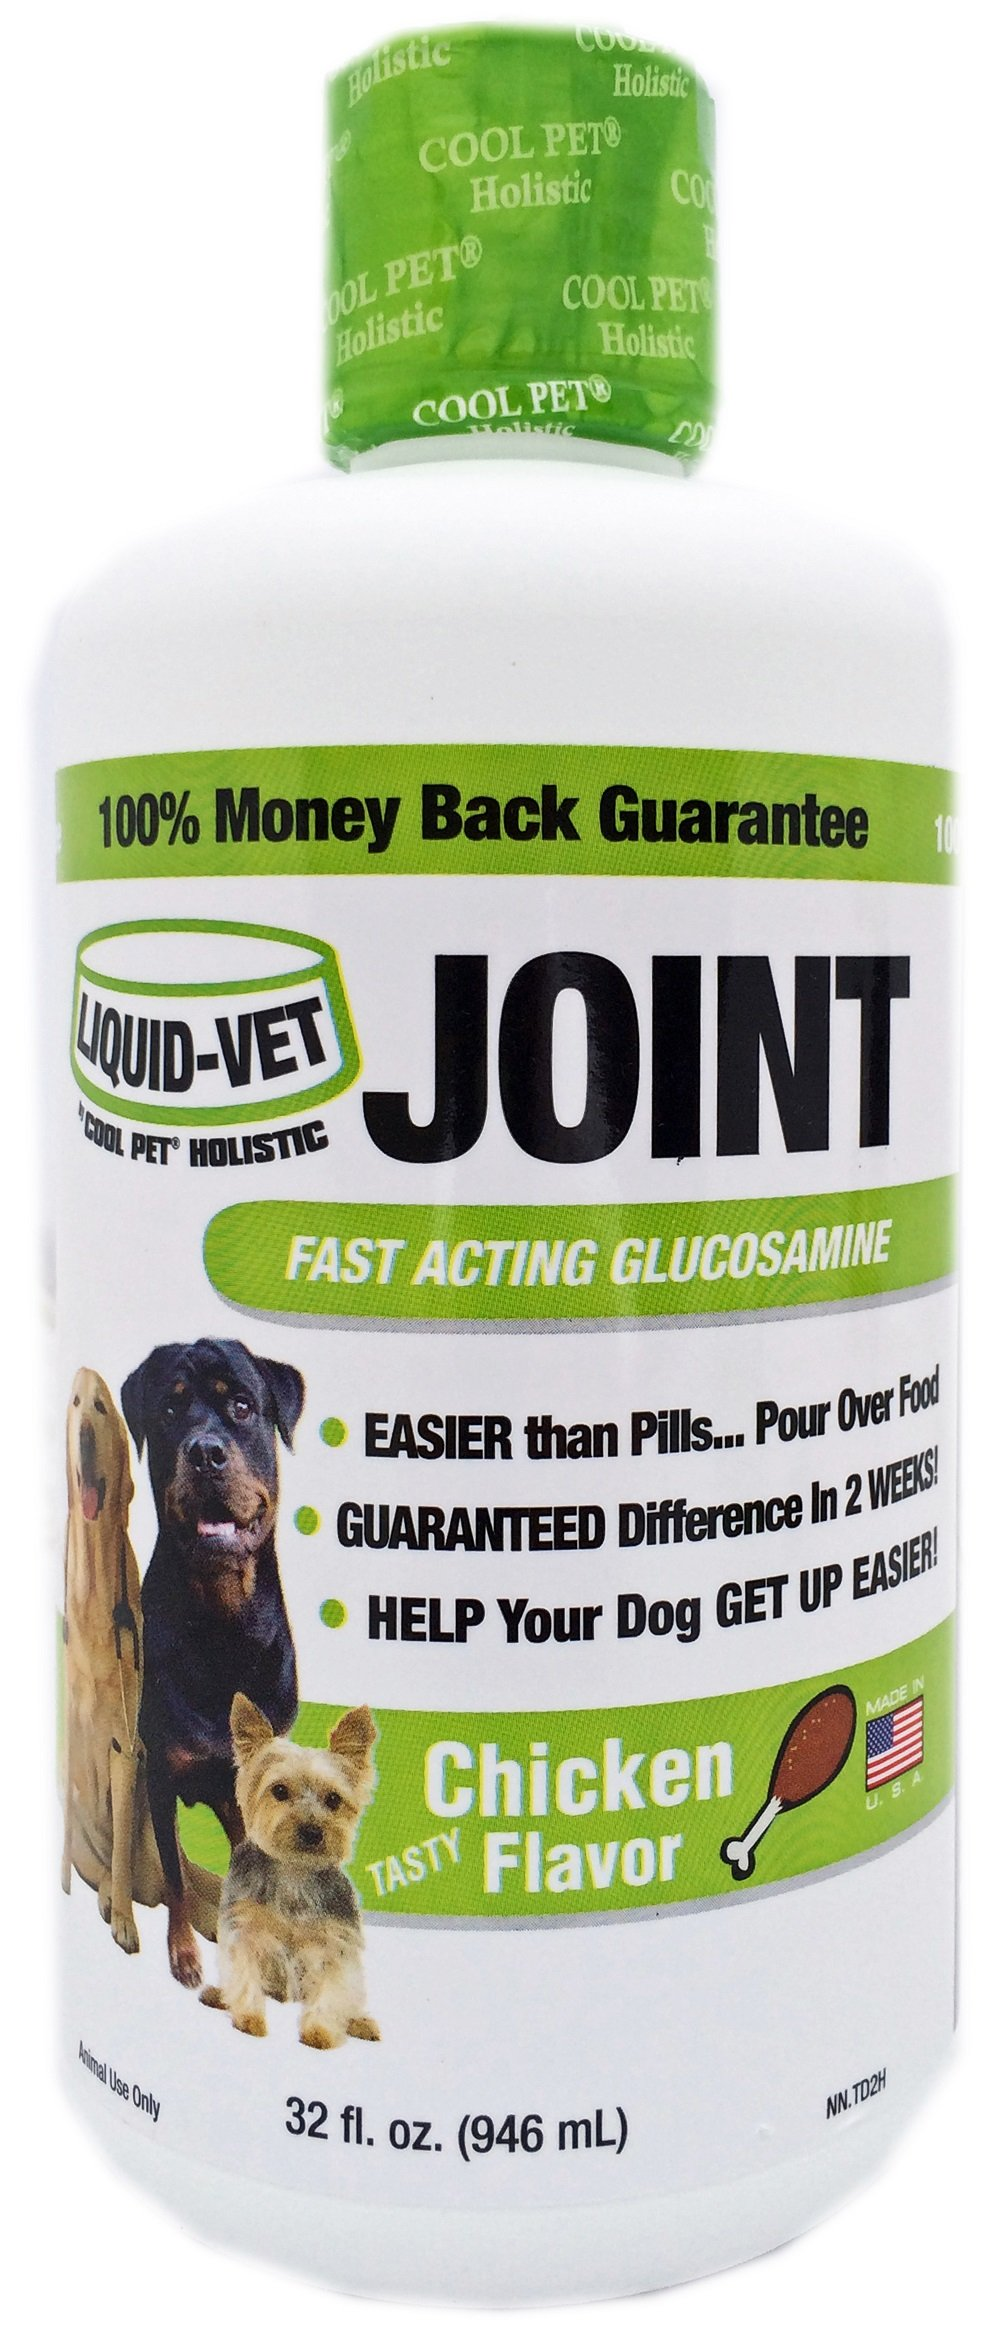 Liquid-Vet Dog Joint Formula – Fast Acting Glucosamine for Joint Aid in Canines – Chicken Flavor – Economy Size – 32 Fluid Ounces